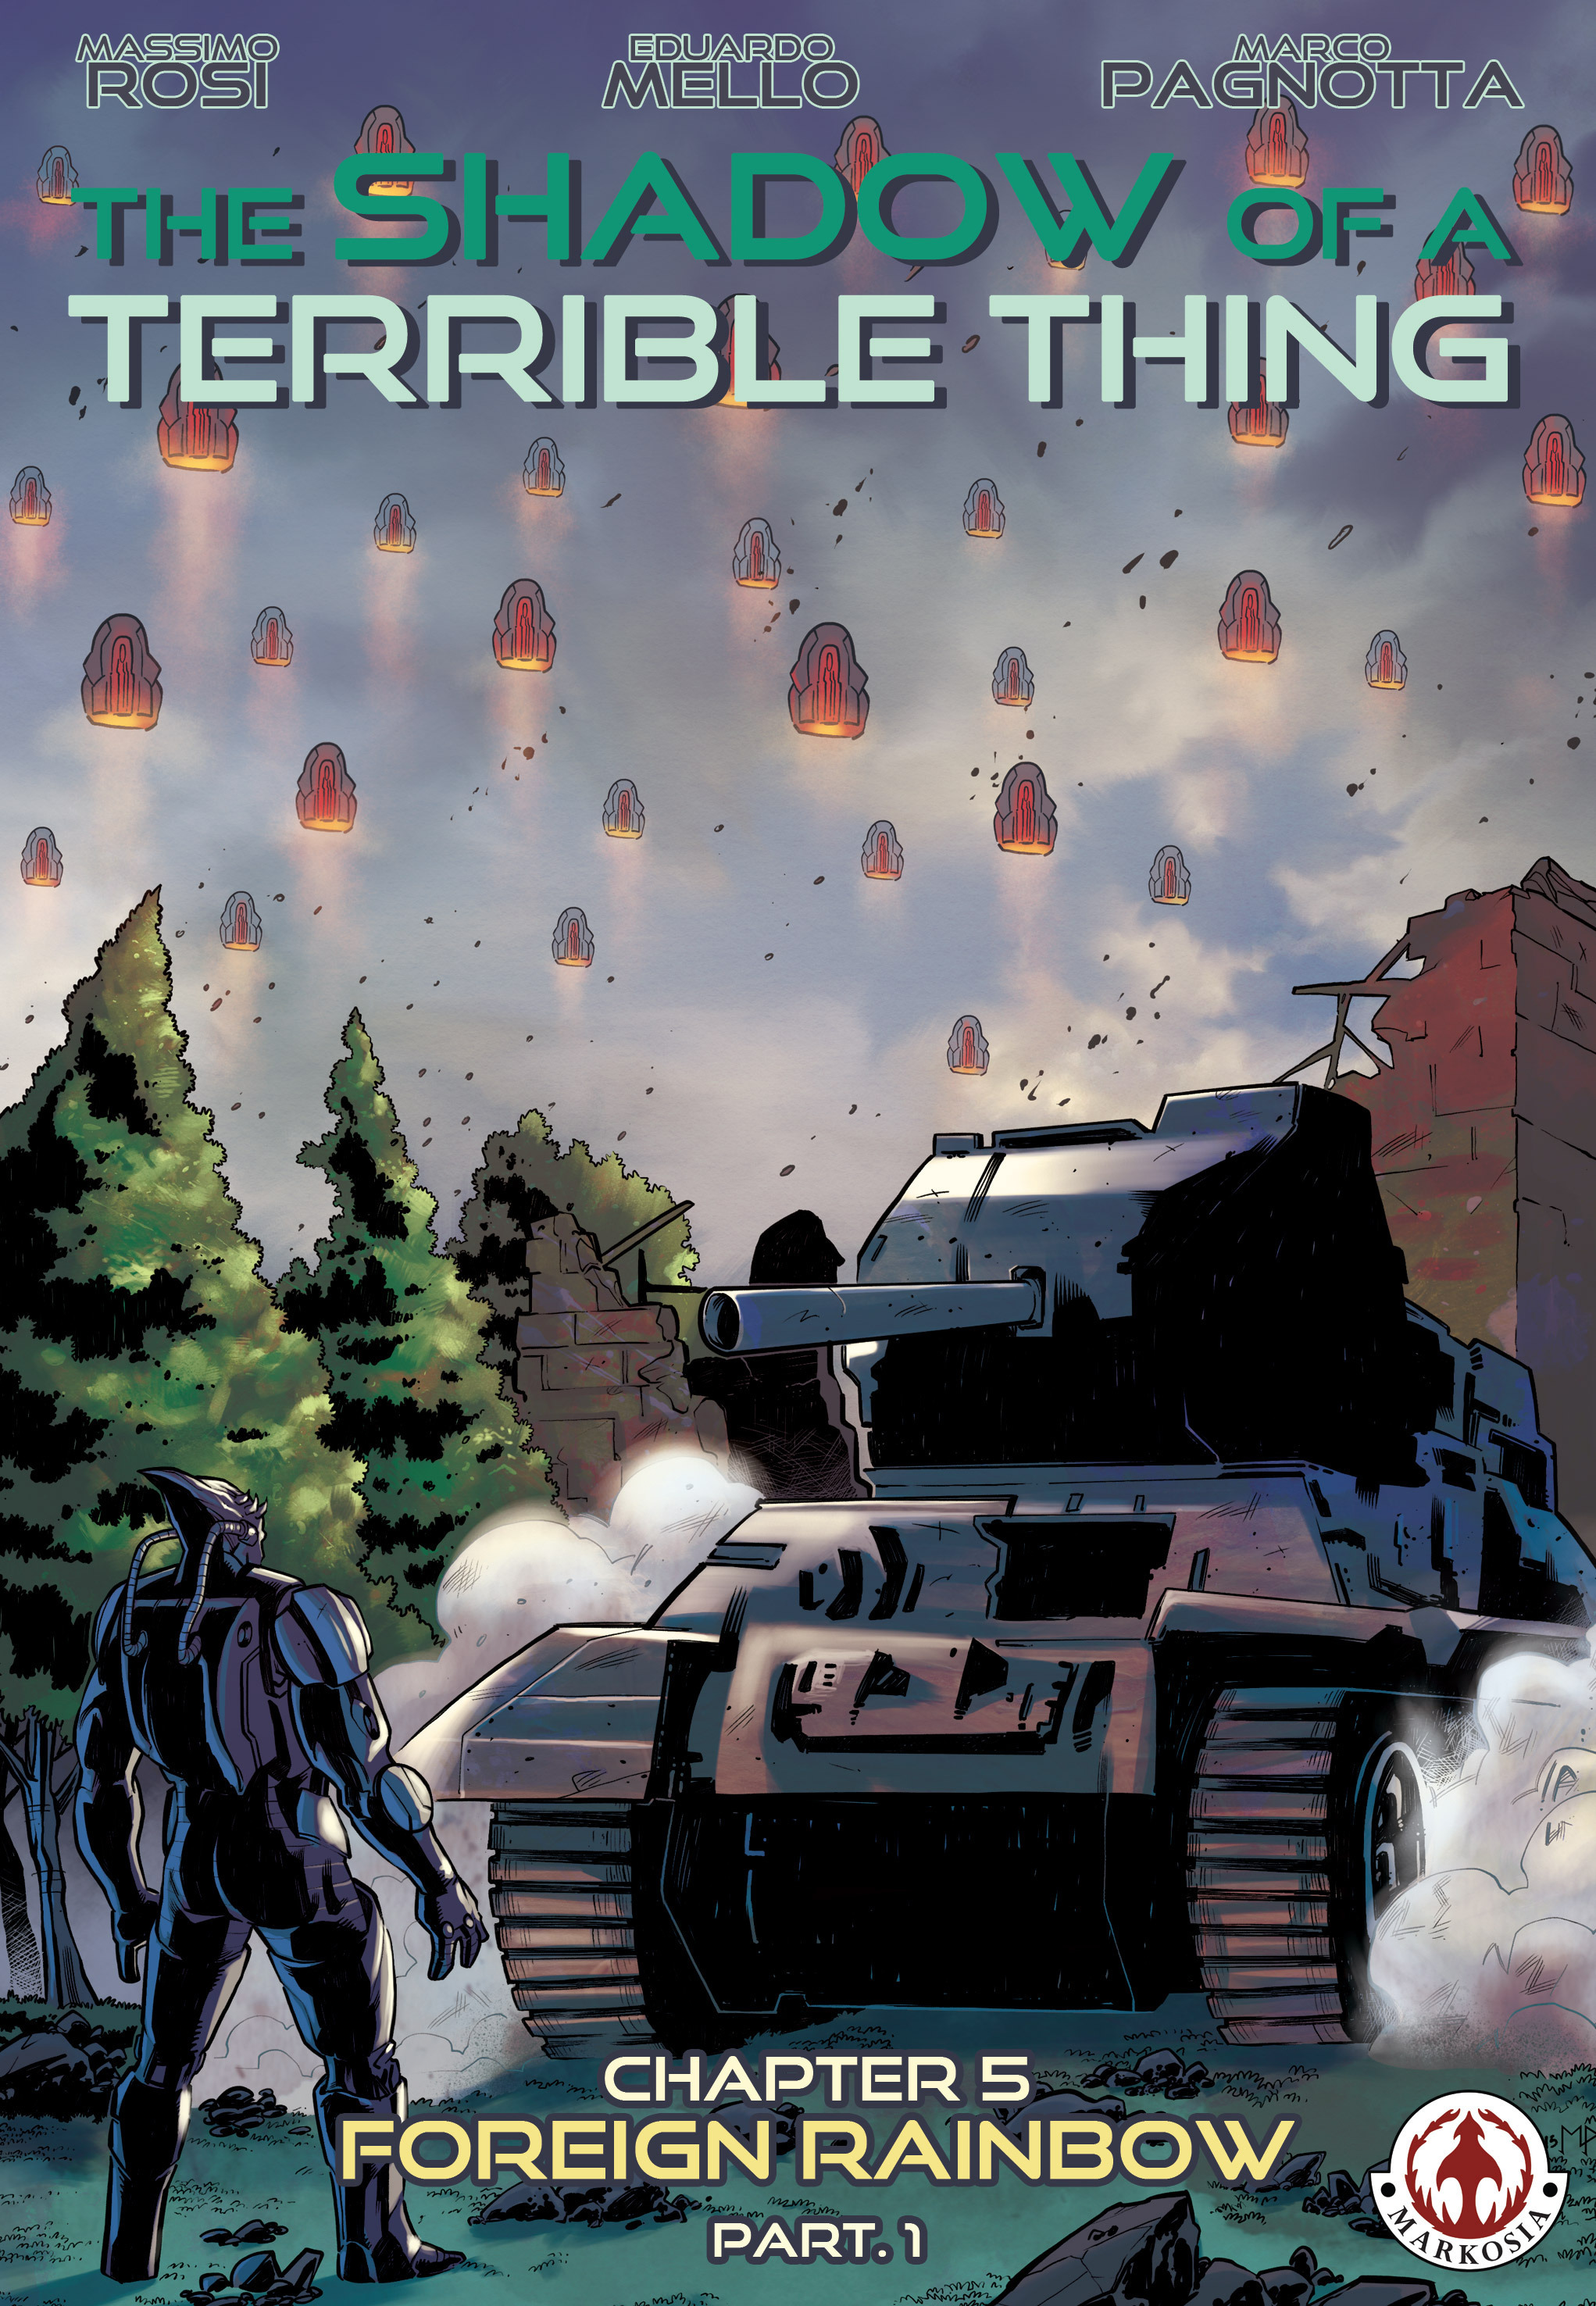 Read online The Shadow of a Terrible Thing comic -  Issue # TPB - 94